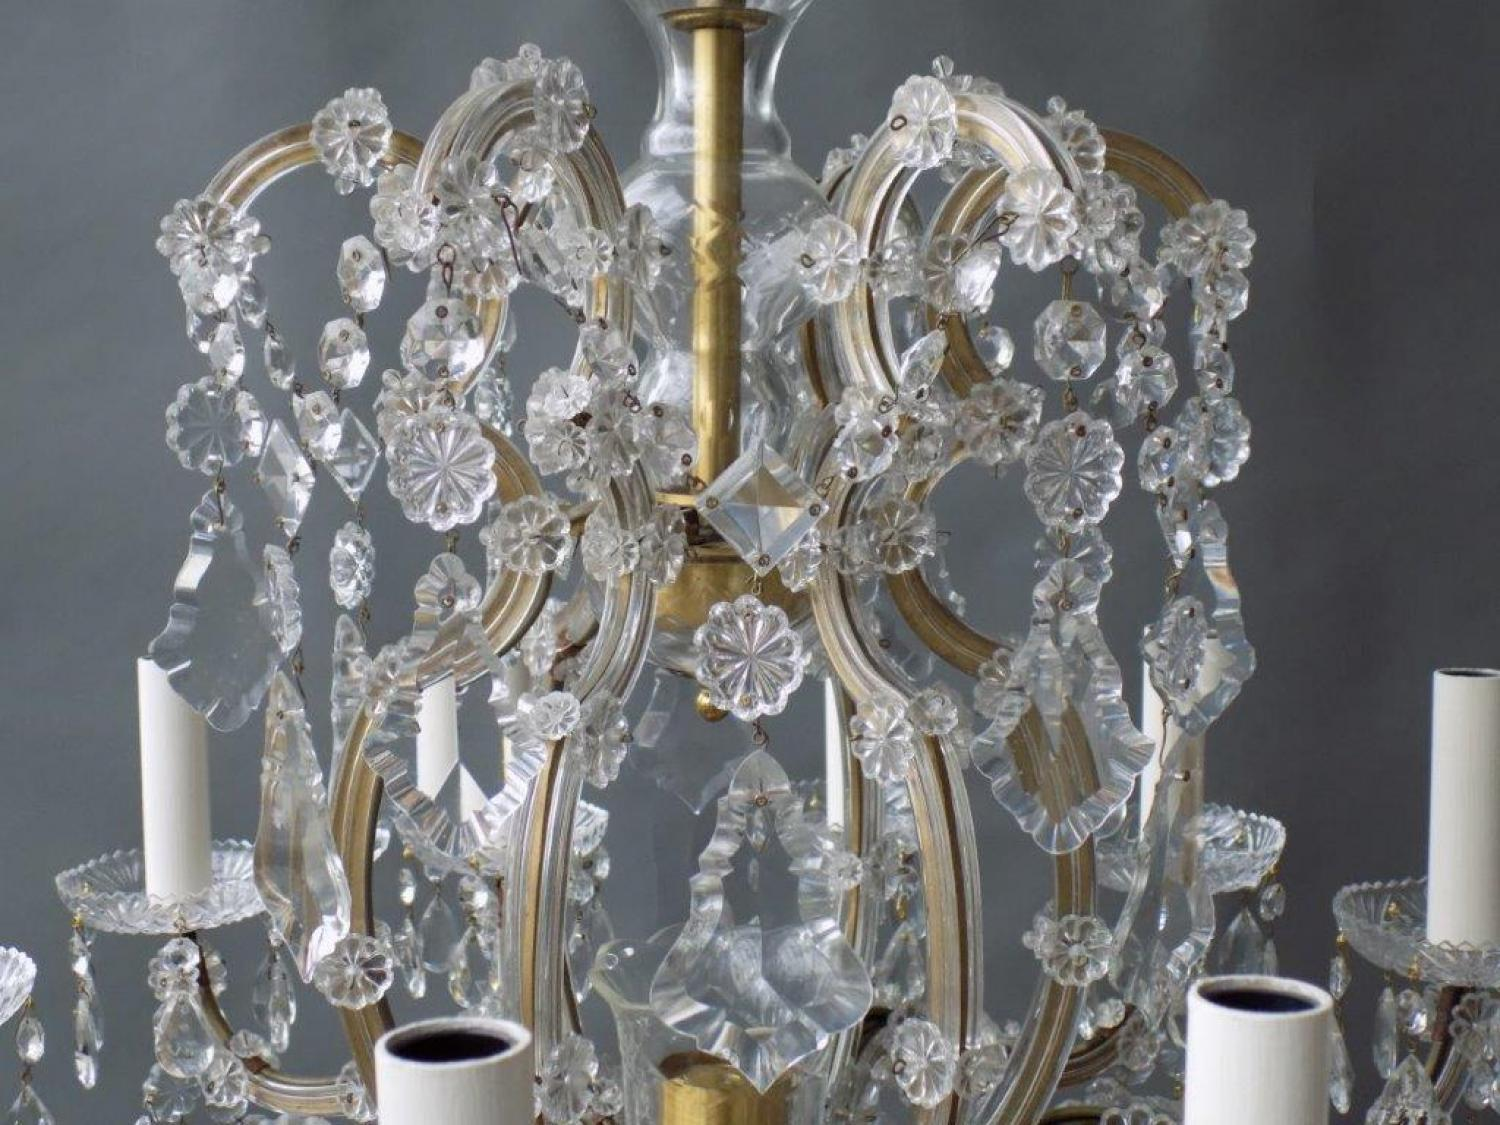 Crystal maria theresa style chandelier in chandeliers crystal maria theresa style chandelier picture 2 arubaitofo Gallery